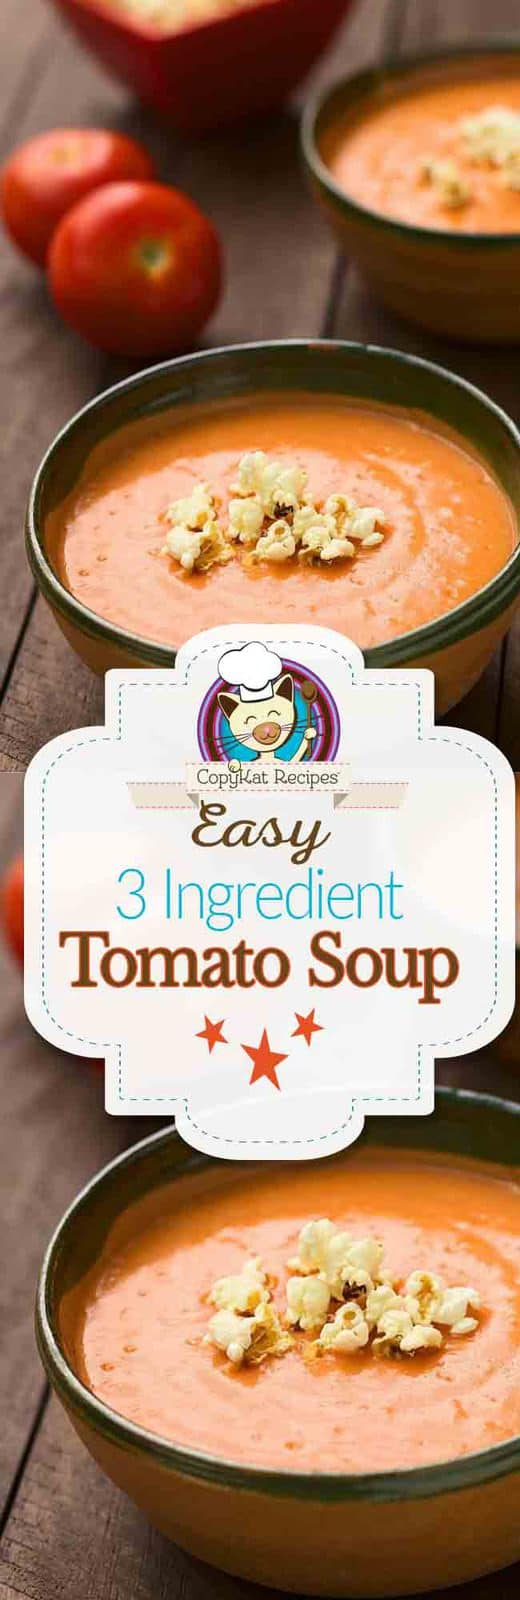 Easy 3 Ingredient Tomato Soup